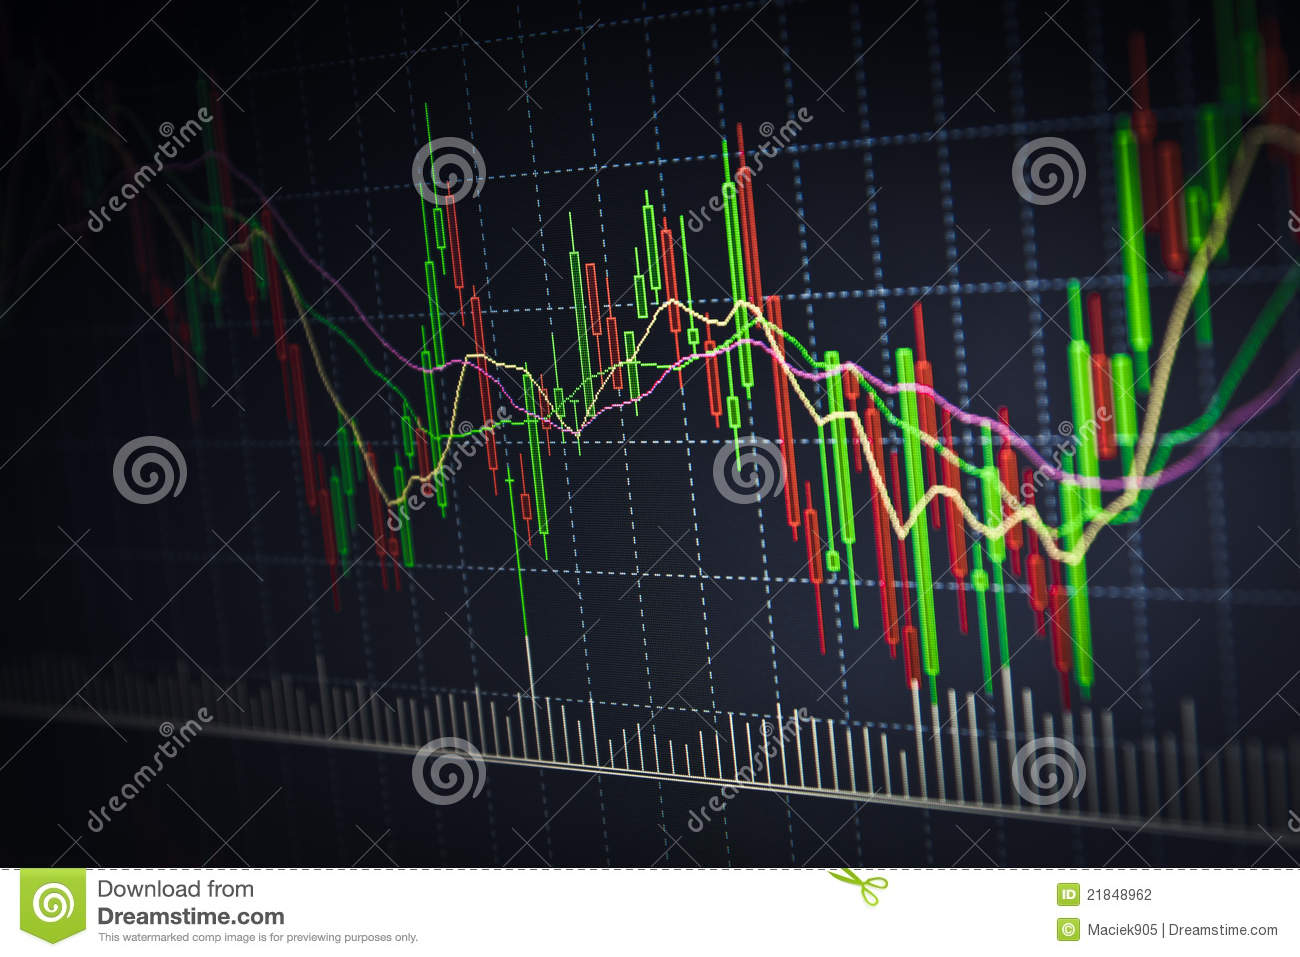 Real Time Stock Quote Real Time Market Ticker  Usd To Nzd Conversion Rate